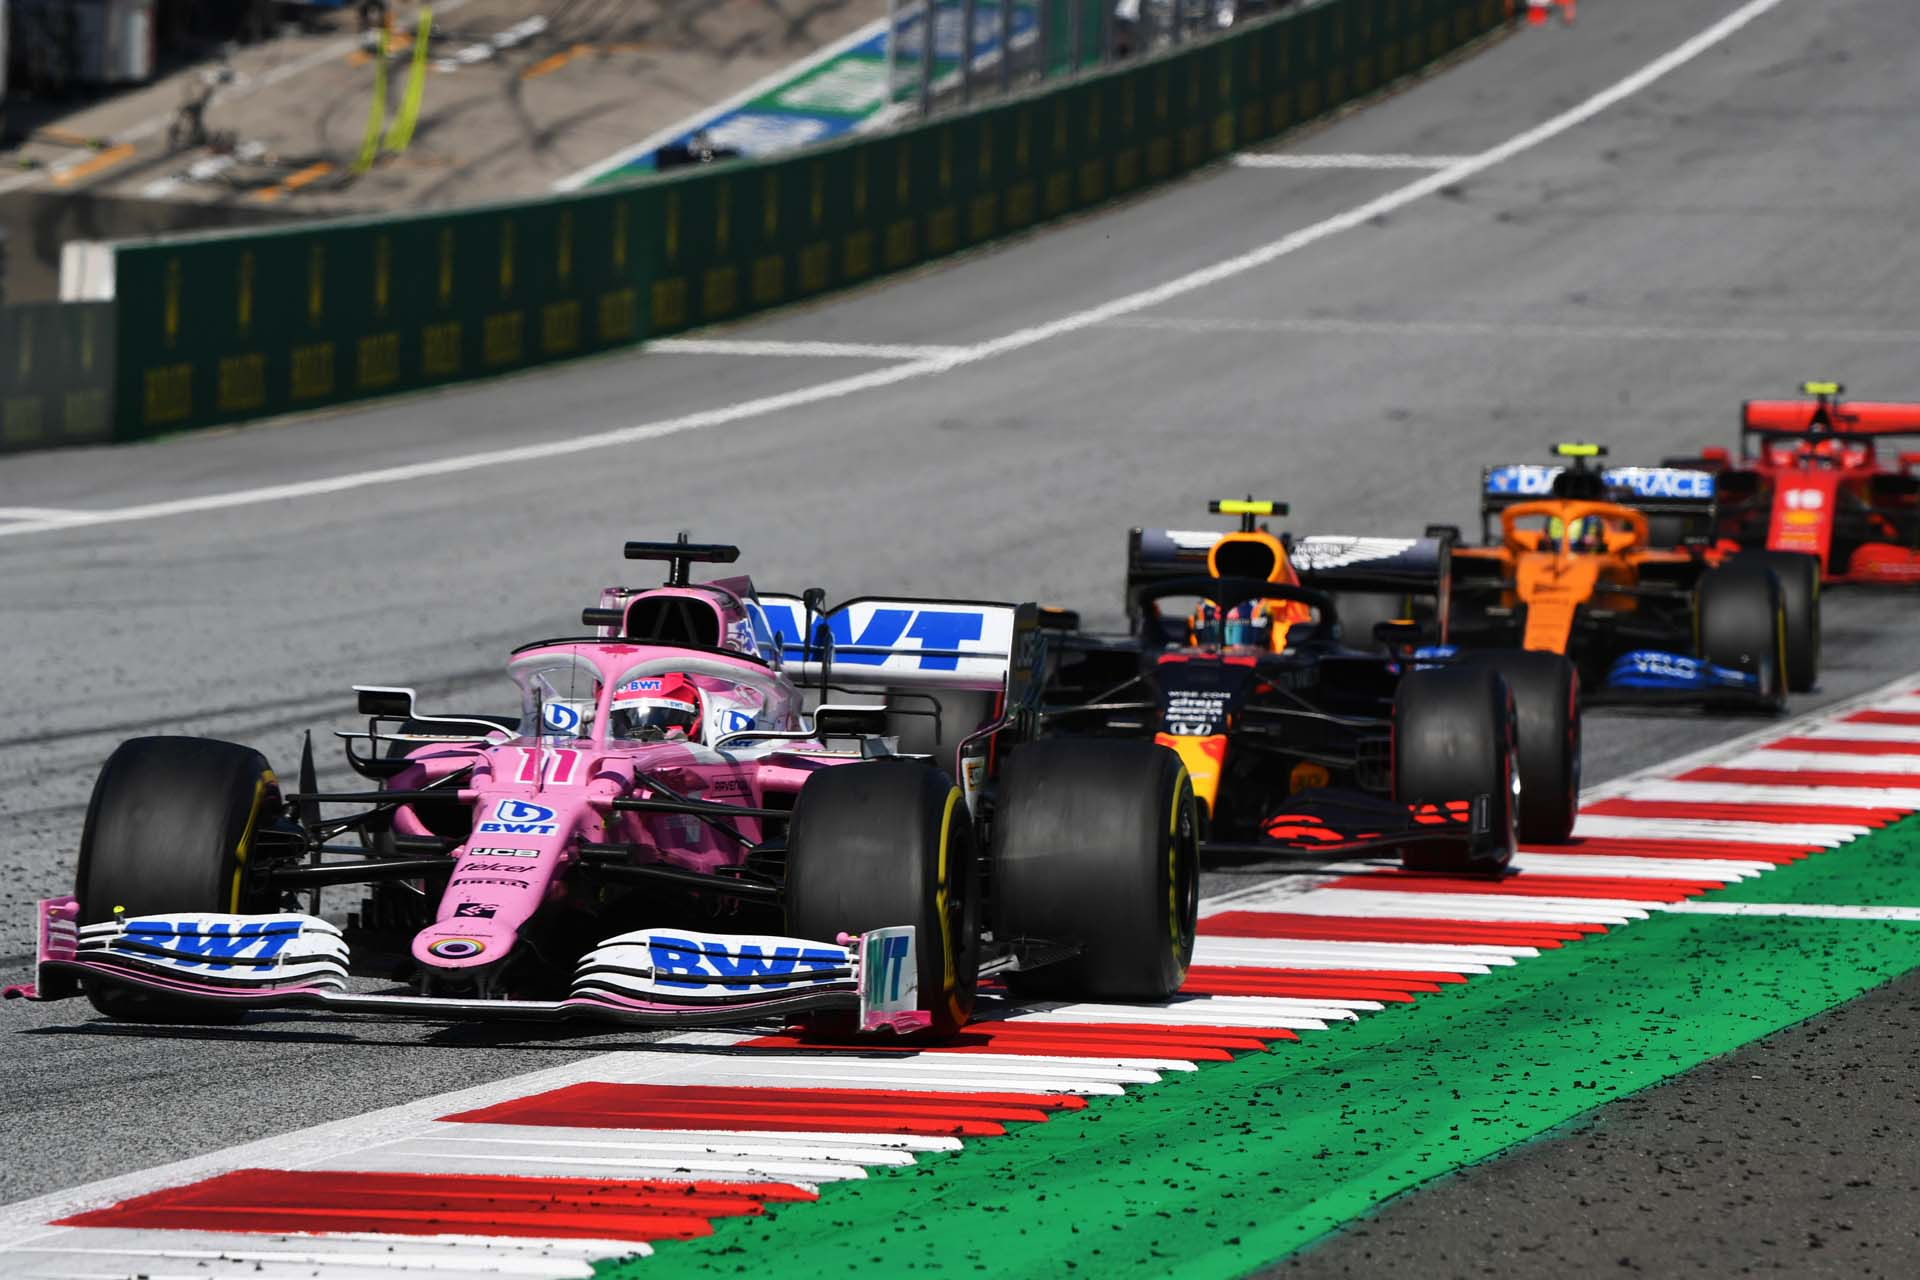 Sergio Perez, Racing Point RP20, leads Alexander Albon, Red Bull Racing RB16